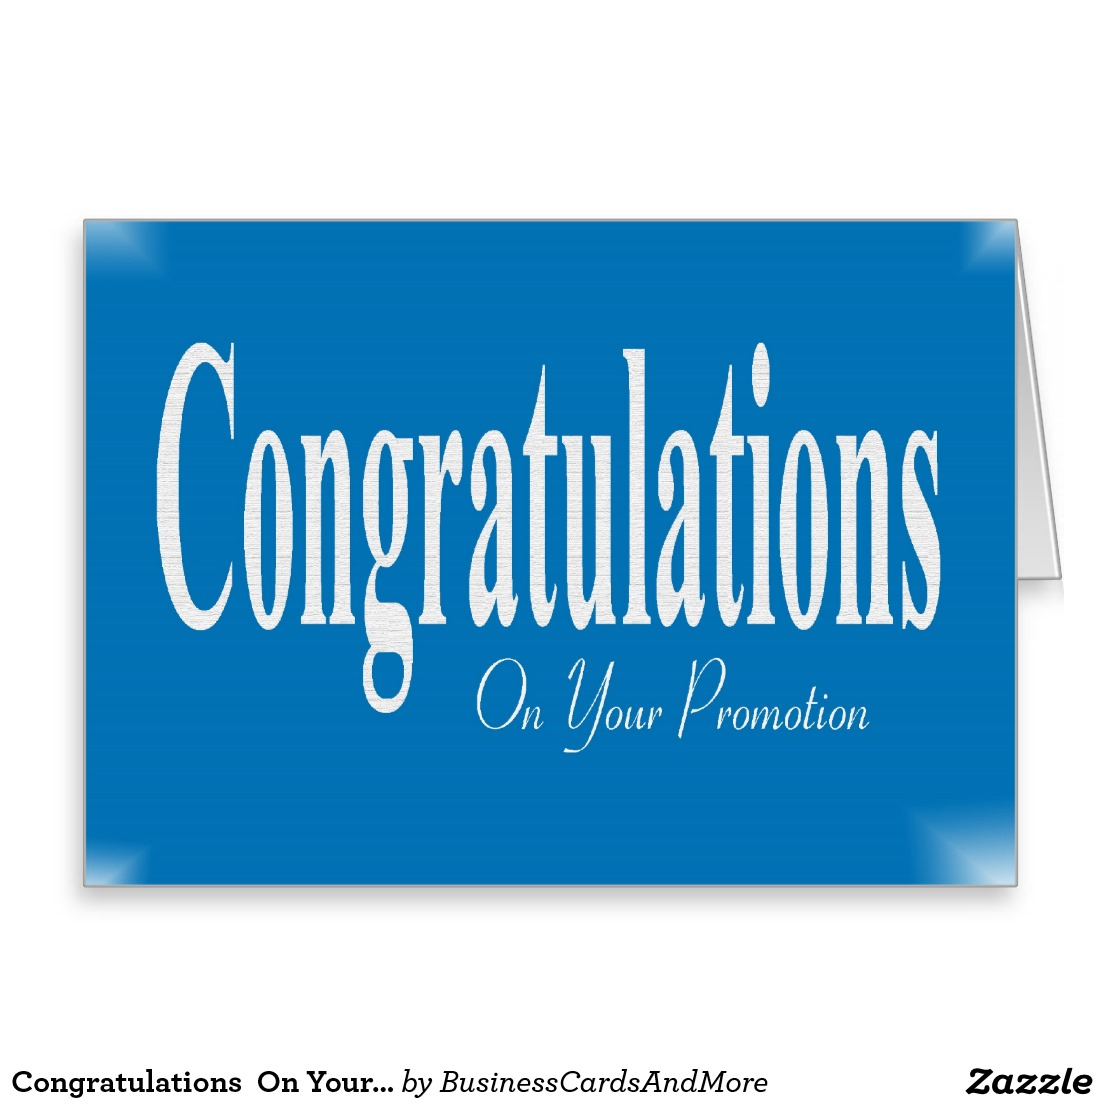 Promotion congratulations images - photo#5